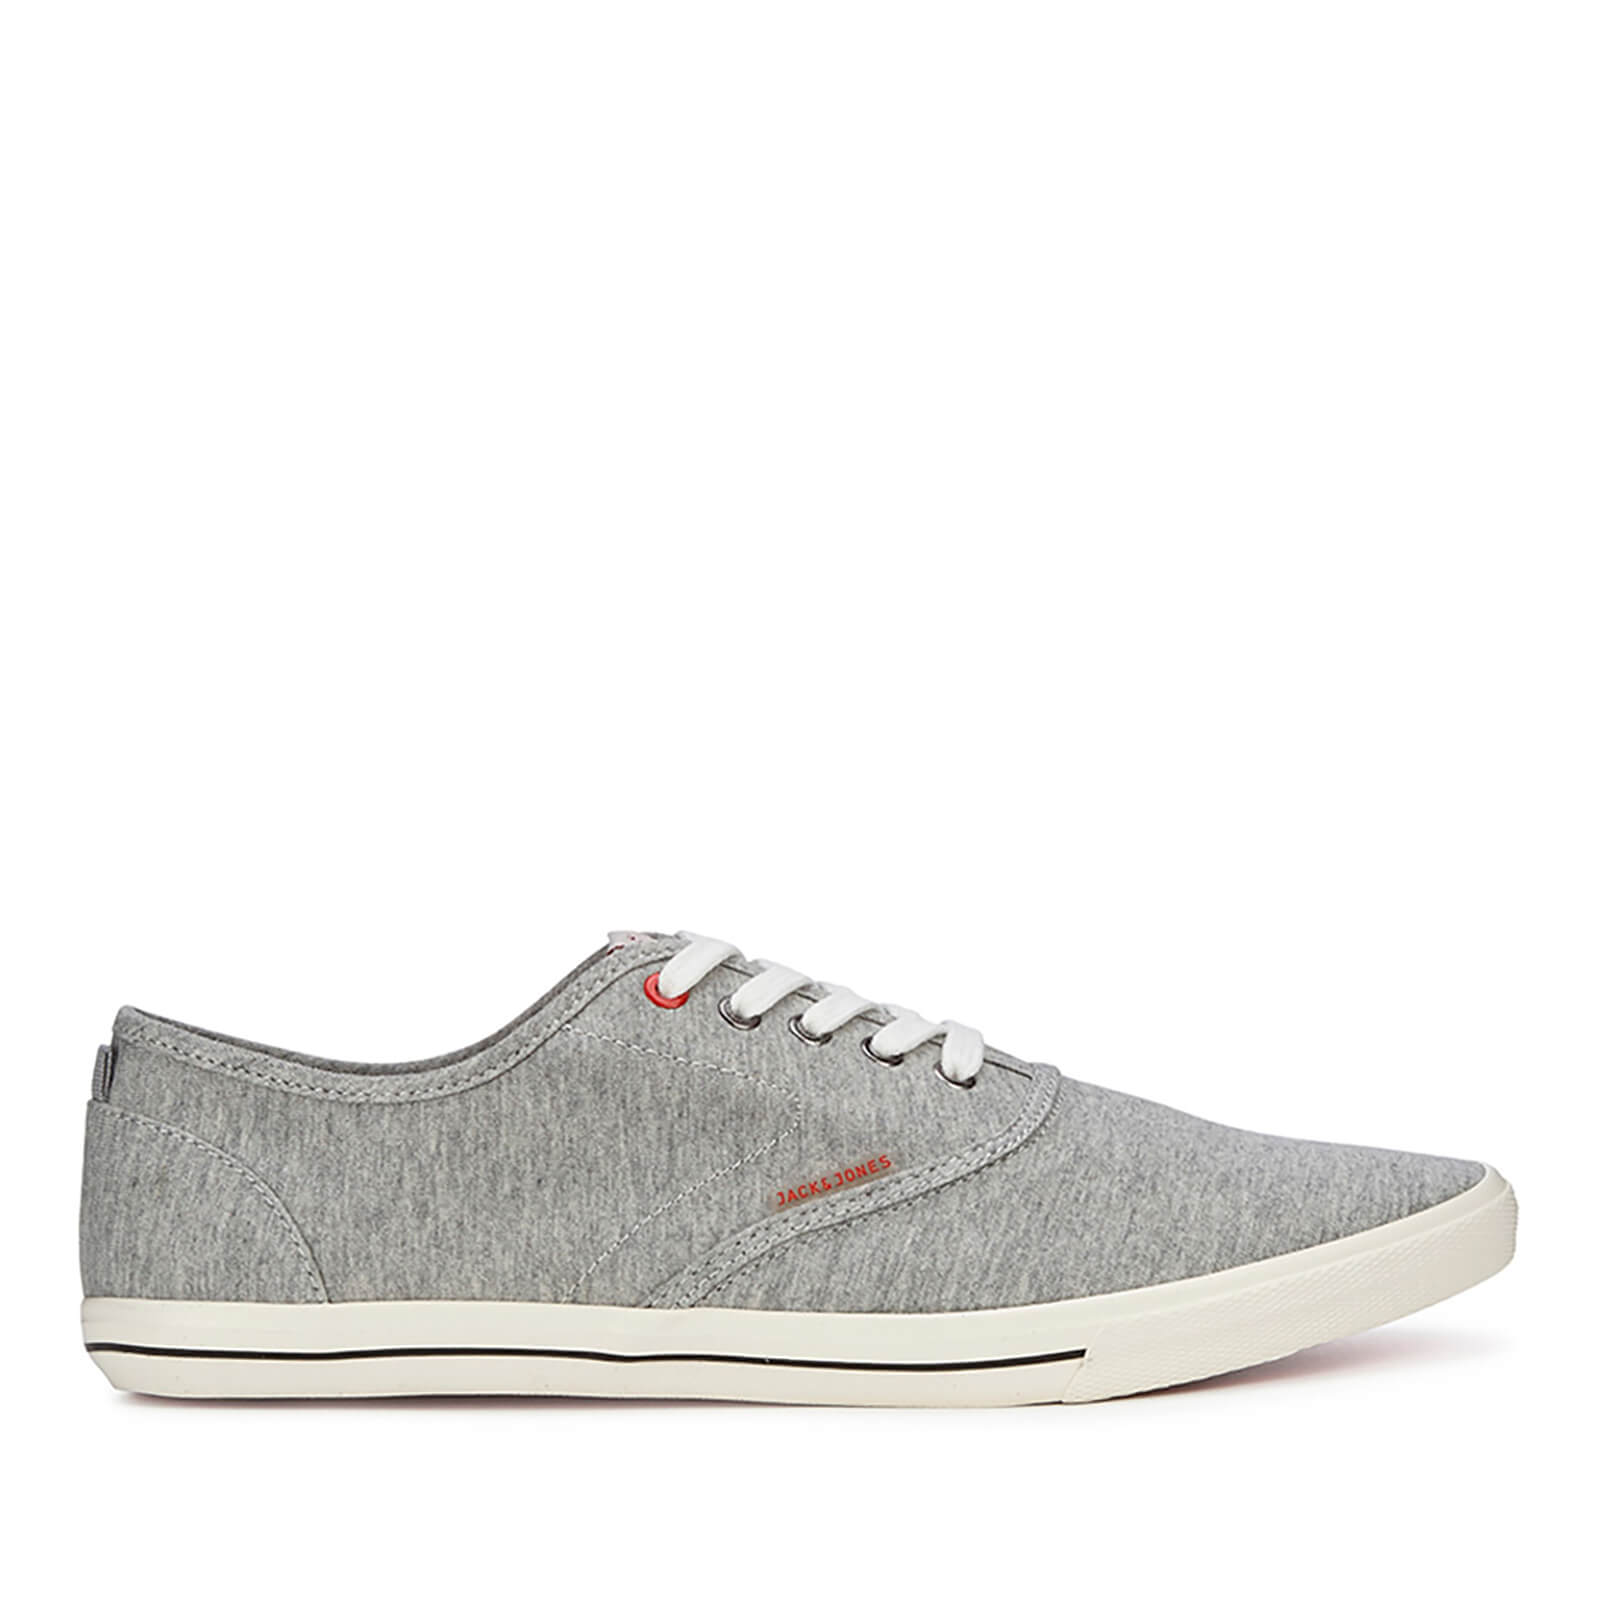 Jack & Jones Spider Canvas Sneakers - Grijs